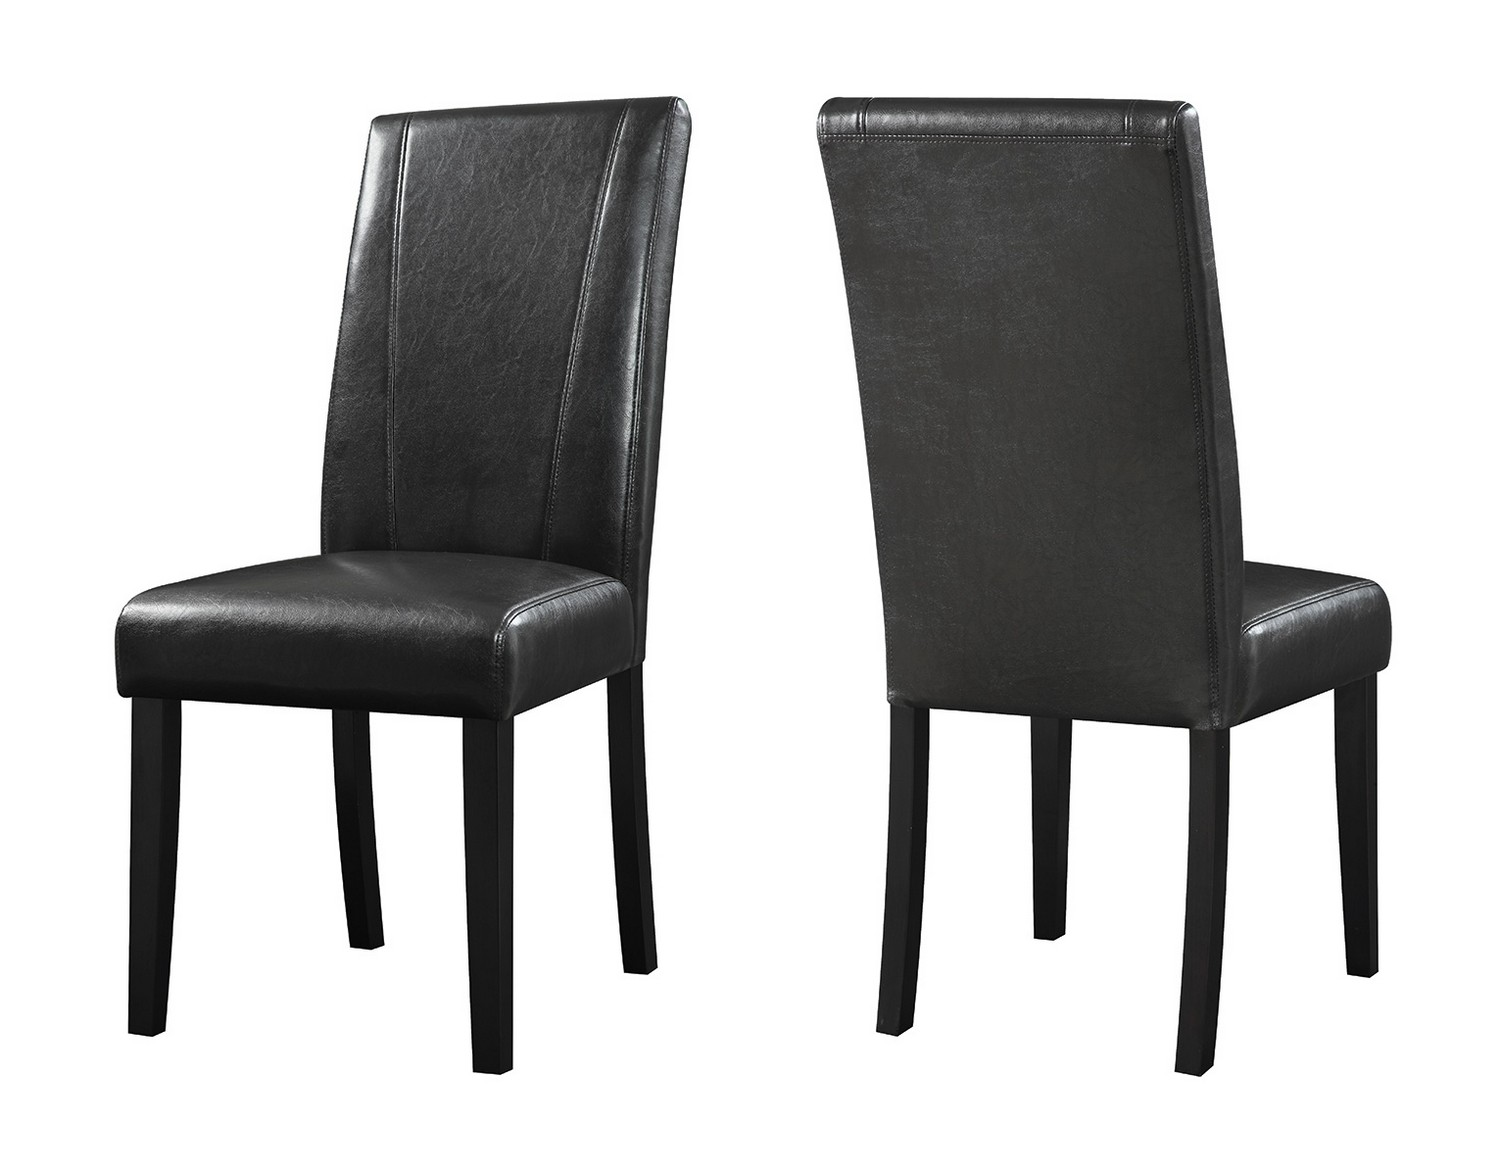 parson chairs rocking for sale coaster nagel chair black 130062 at homelement